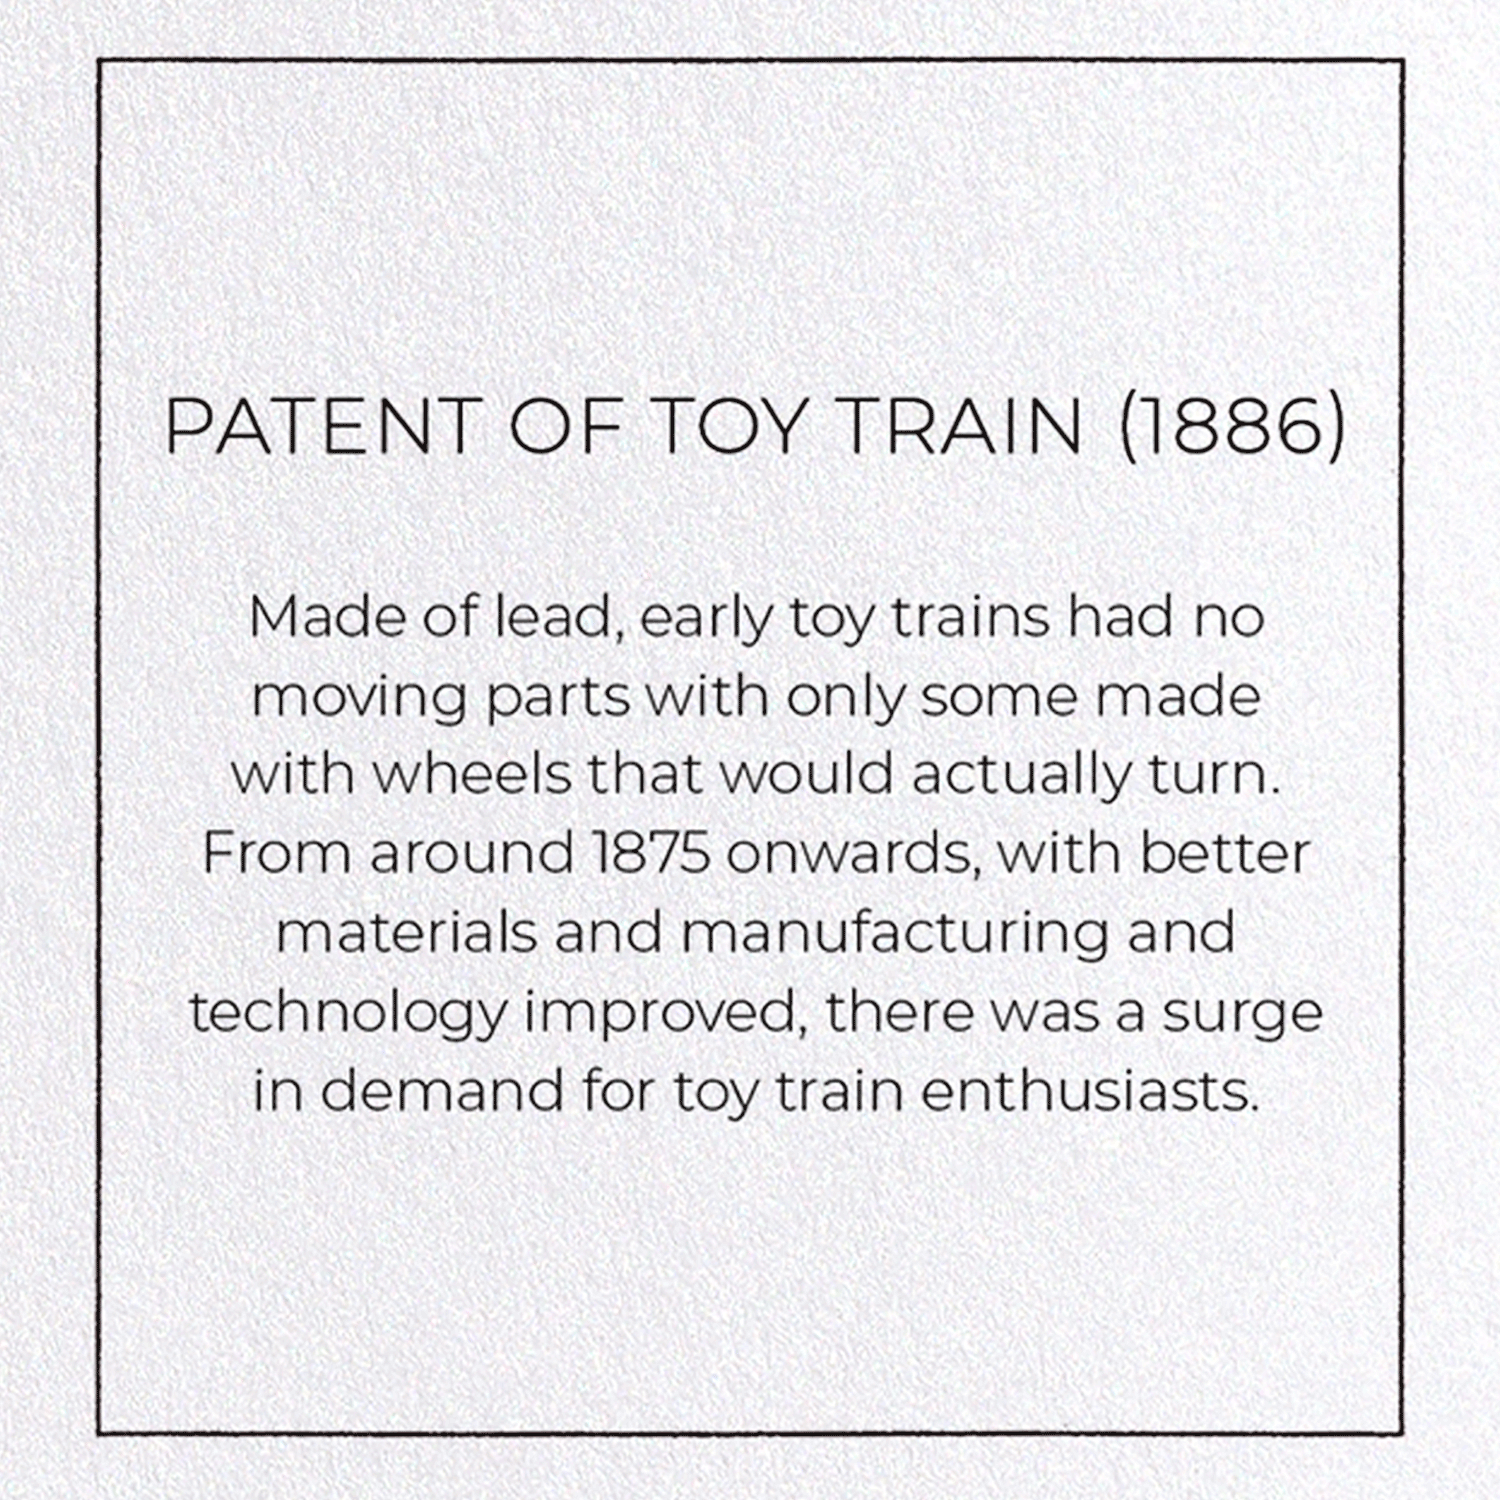 PATENT OF TOY TRAIN (1886)